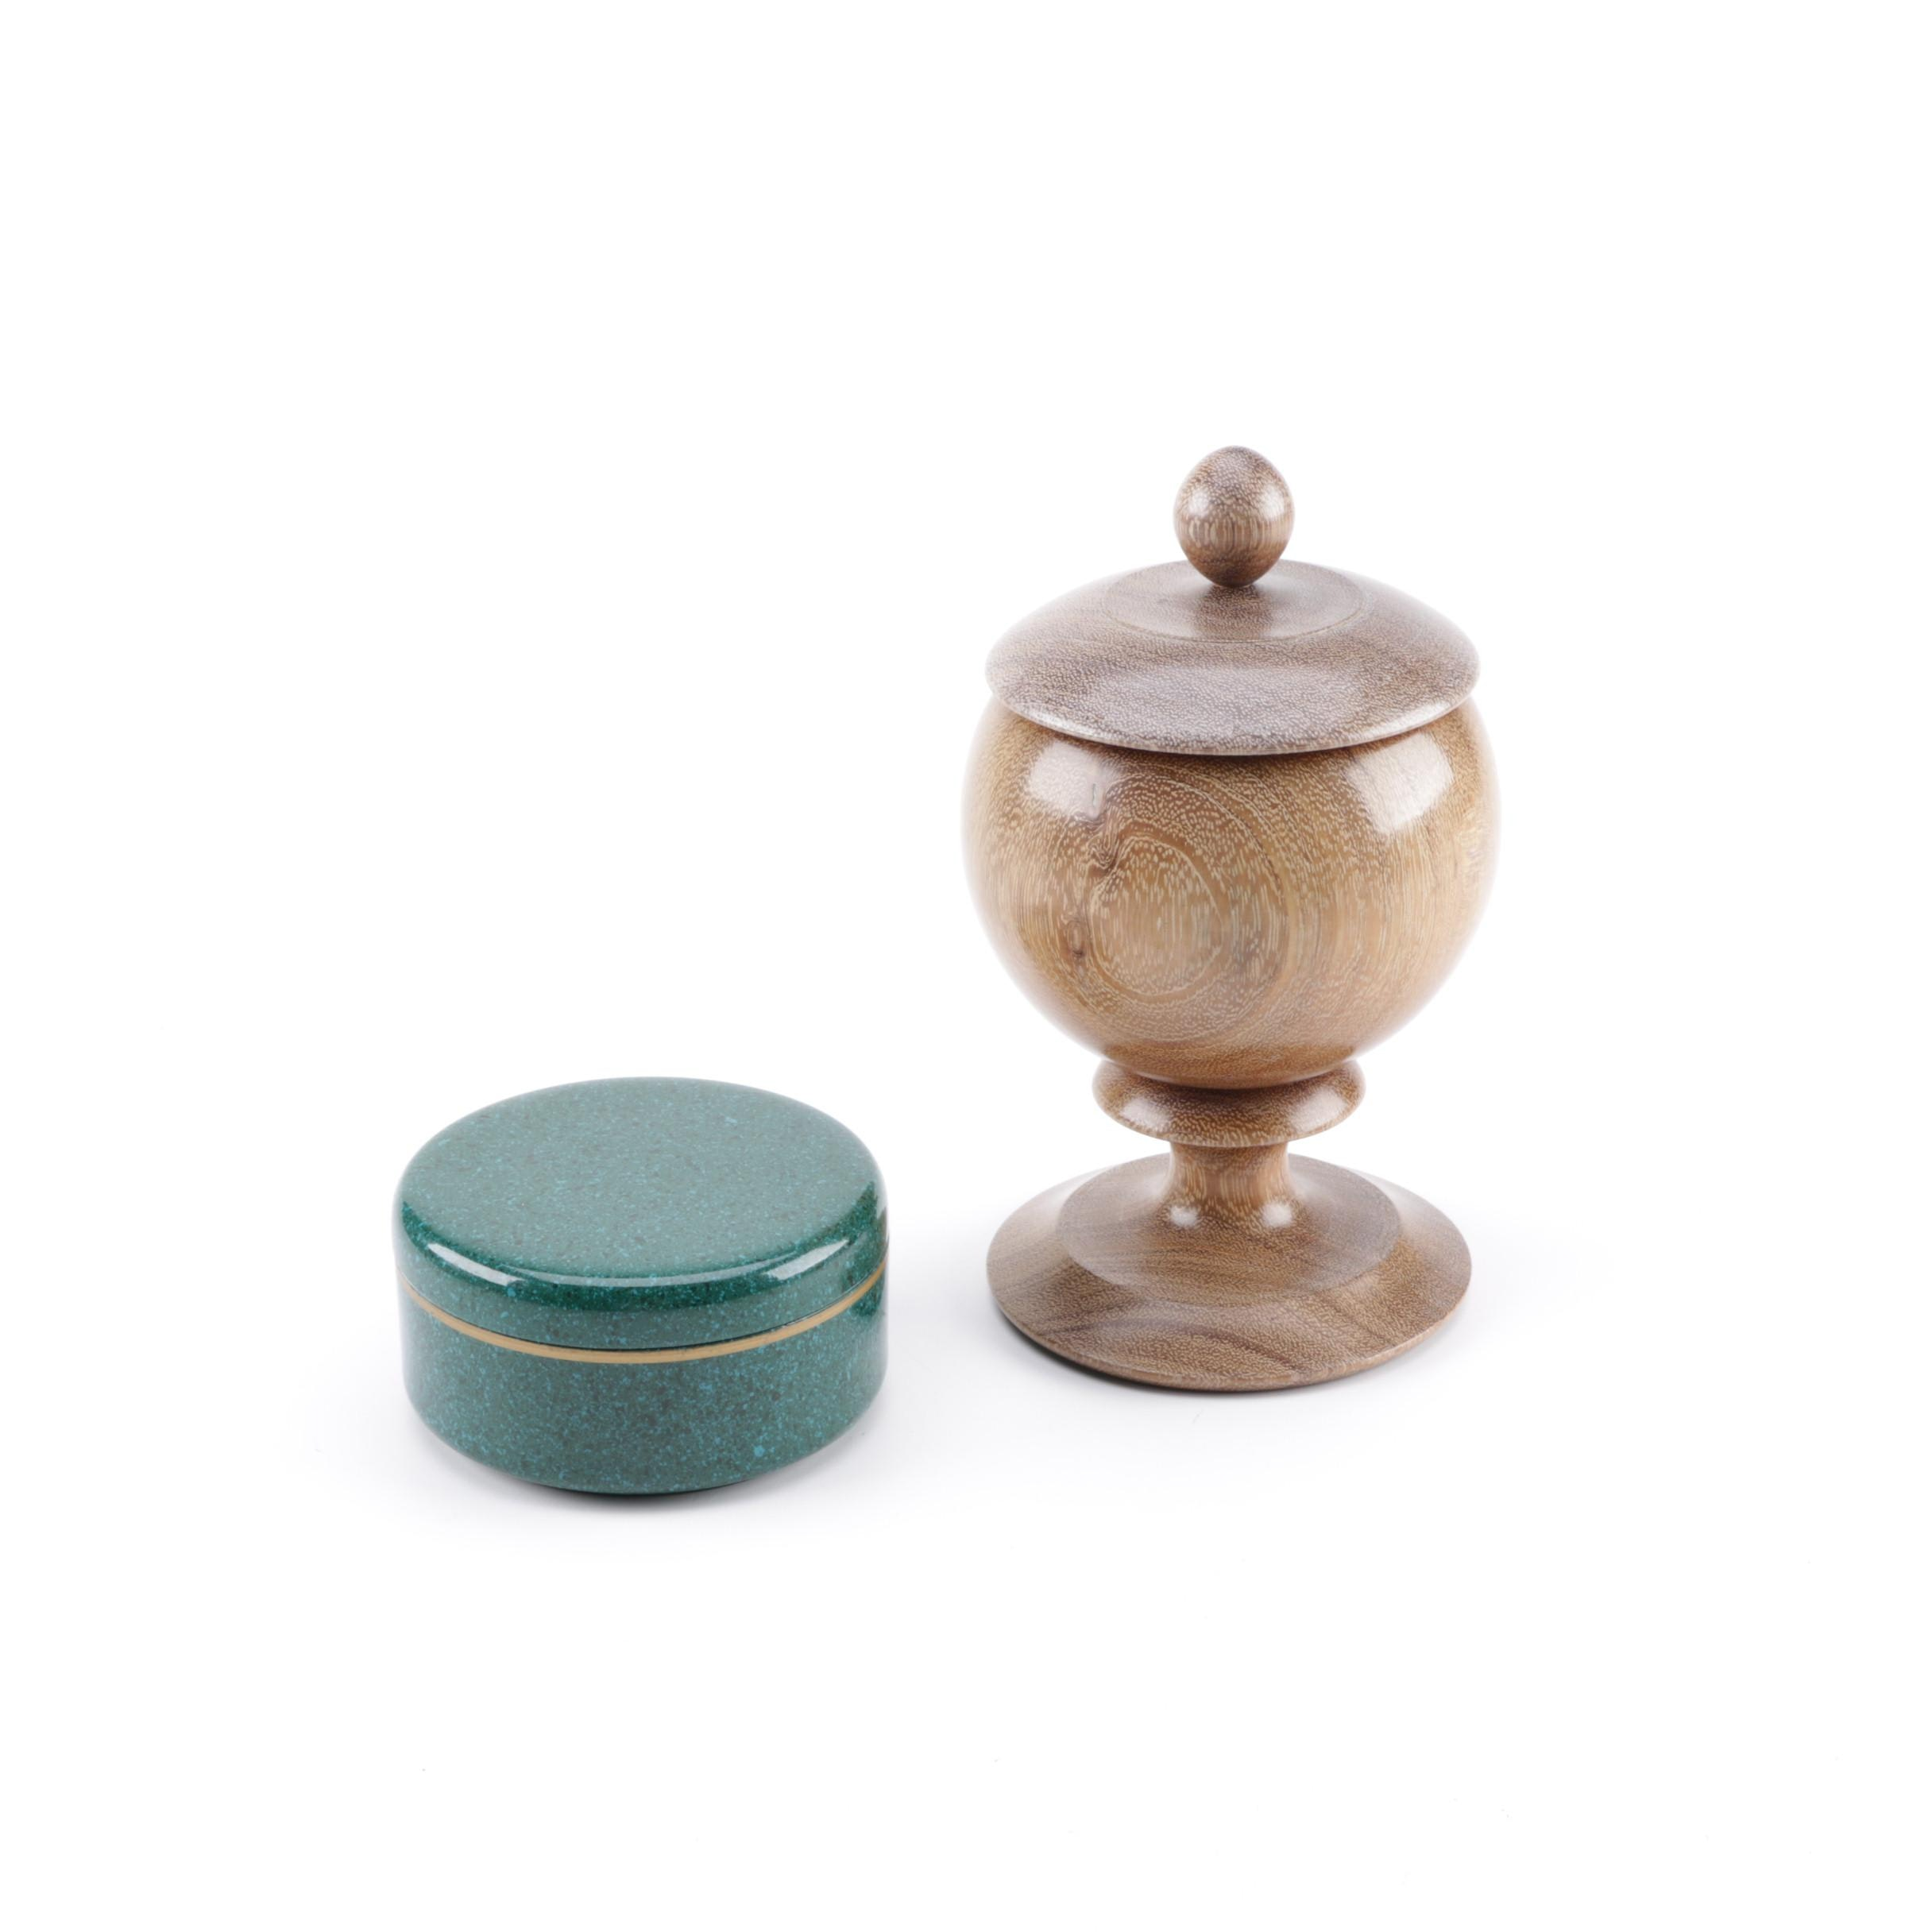 Carved Lidded Wood Urn and Stone Coasters